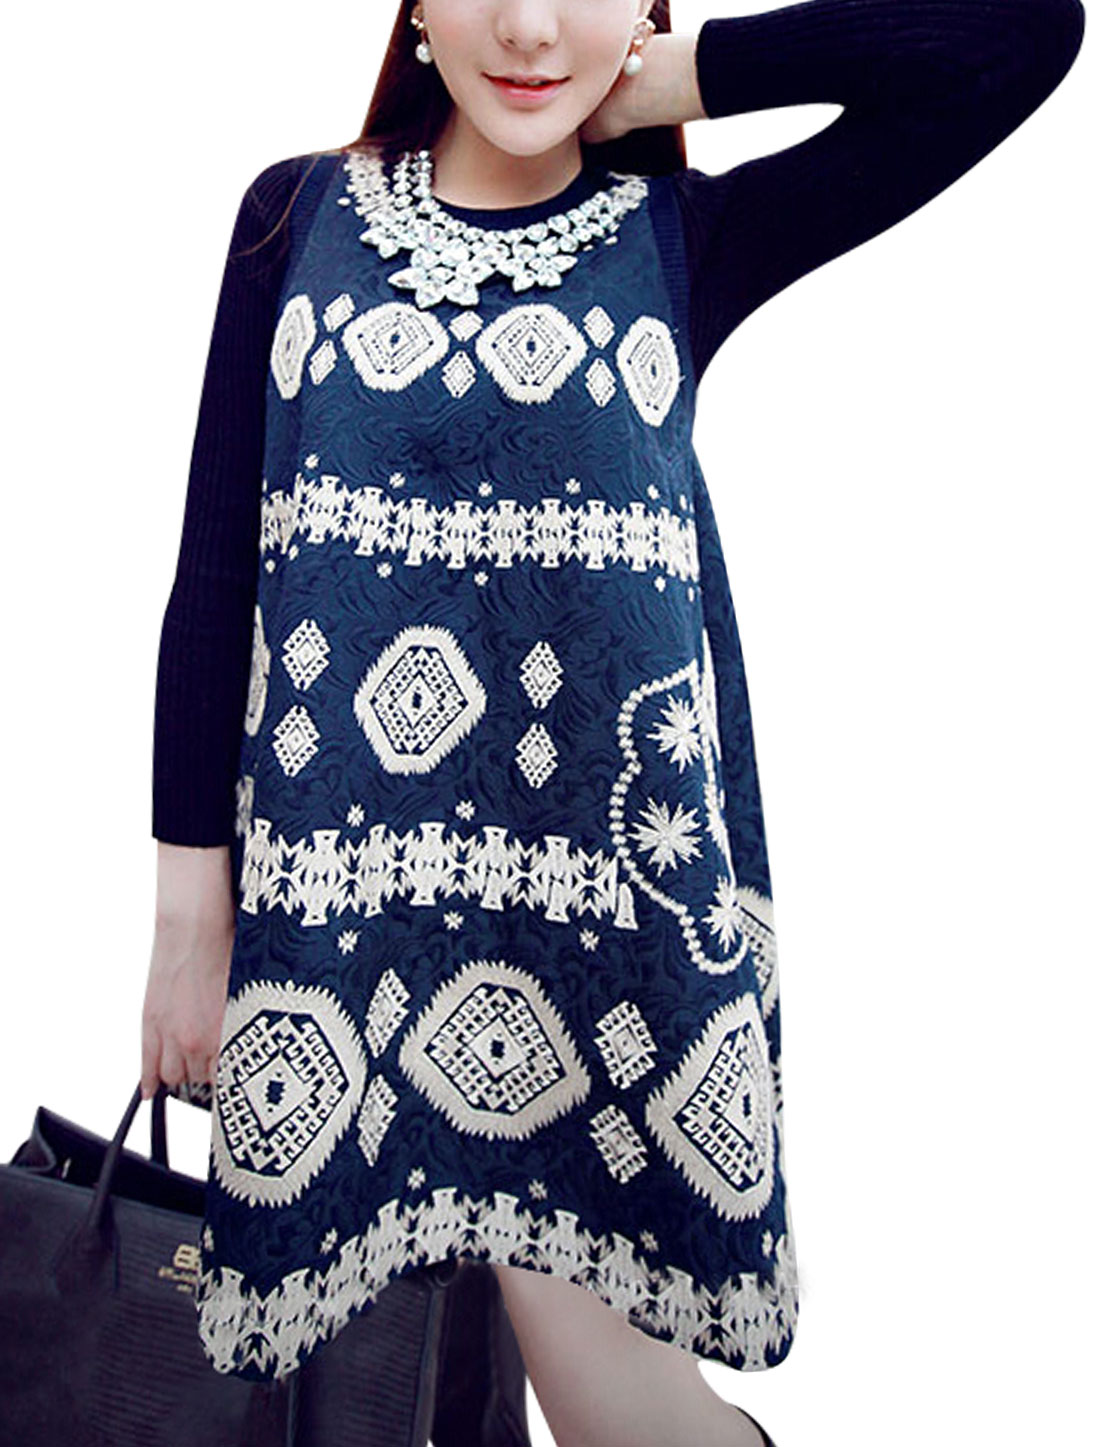 Round Neck Novelty Prints Casual Tunic Top for Women Navy Blue XS